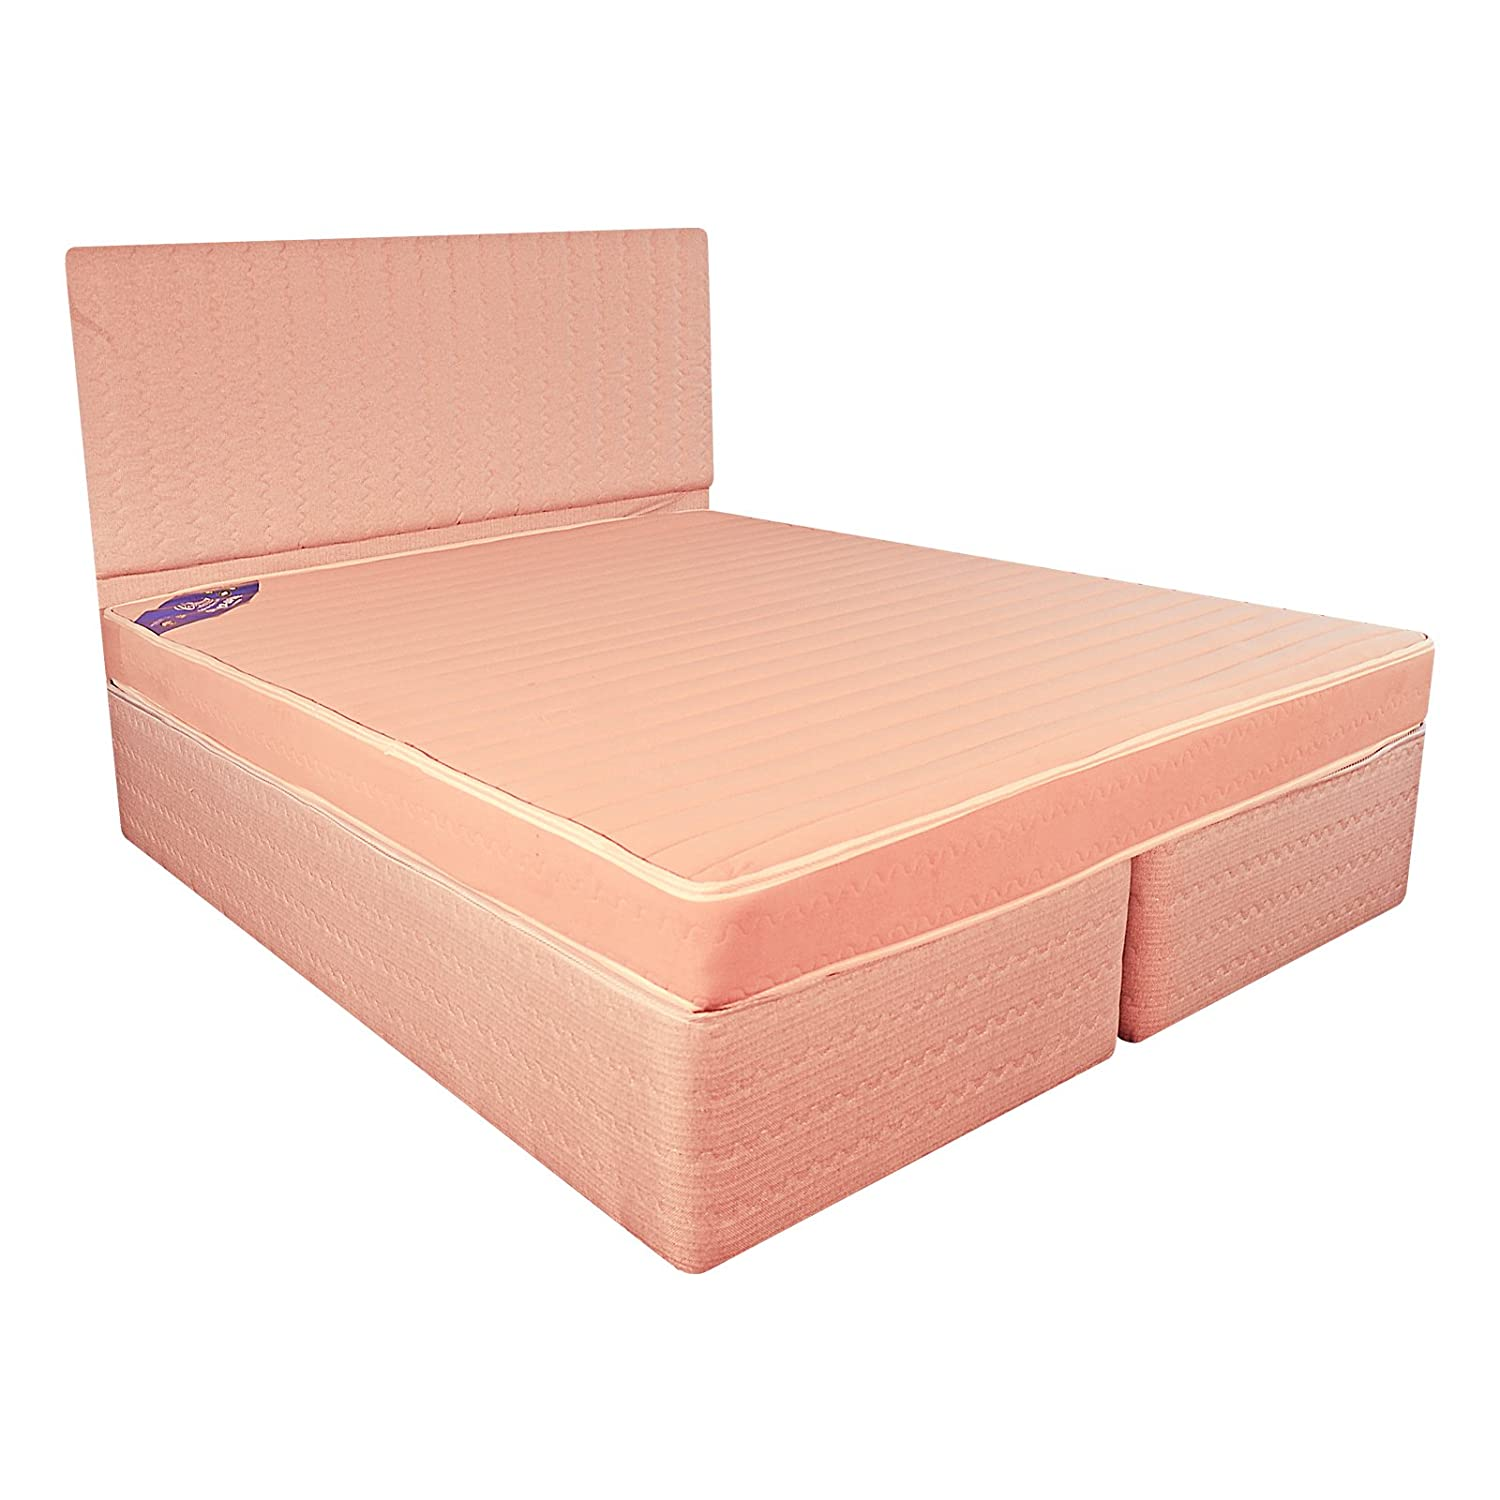 Centuary Mattresses Wellness Collection Ortho Spine 5 Inch Queen